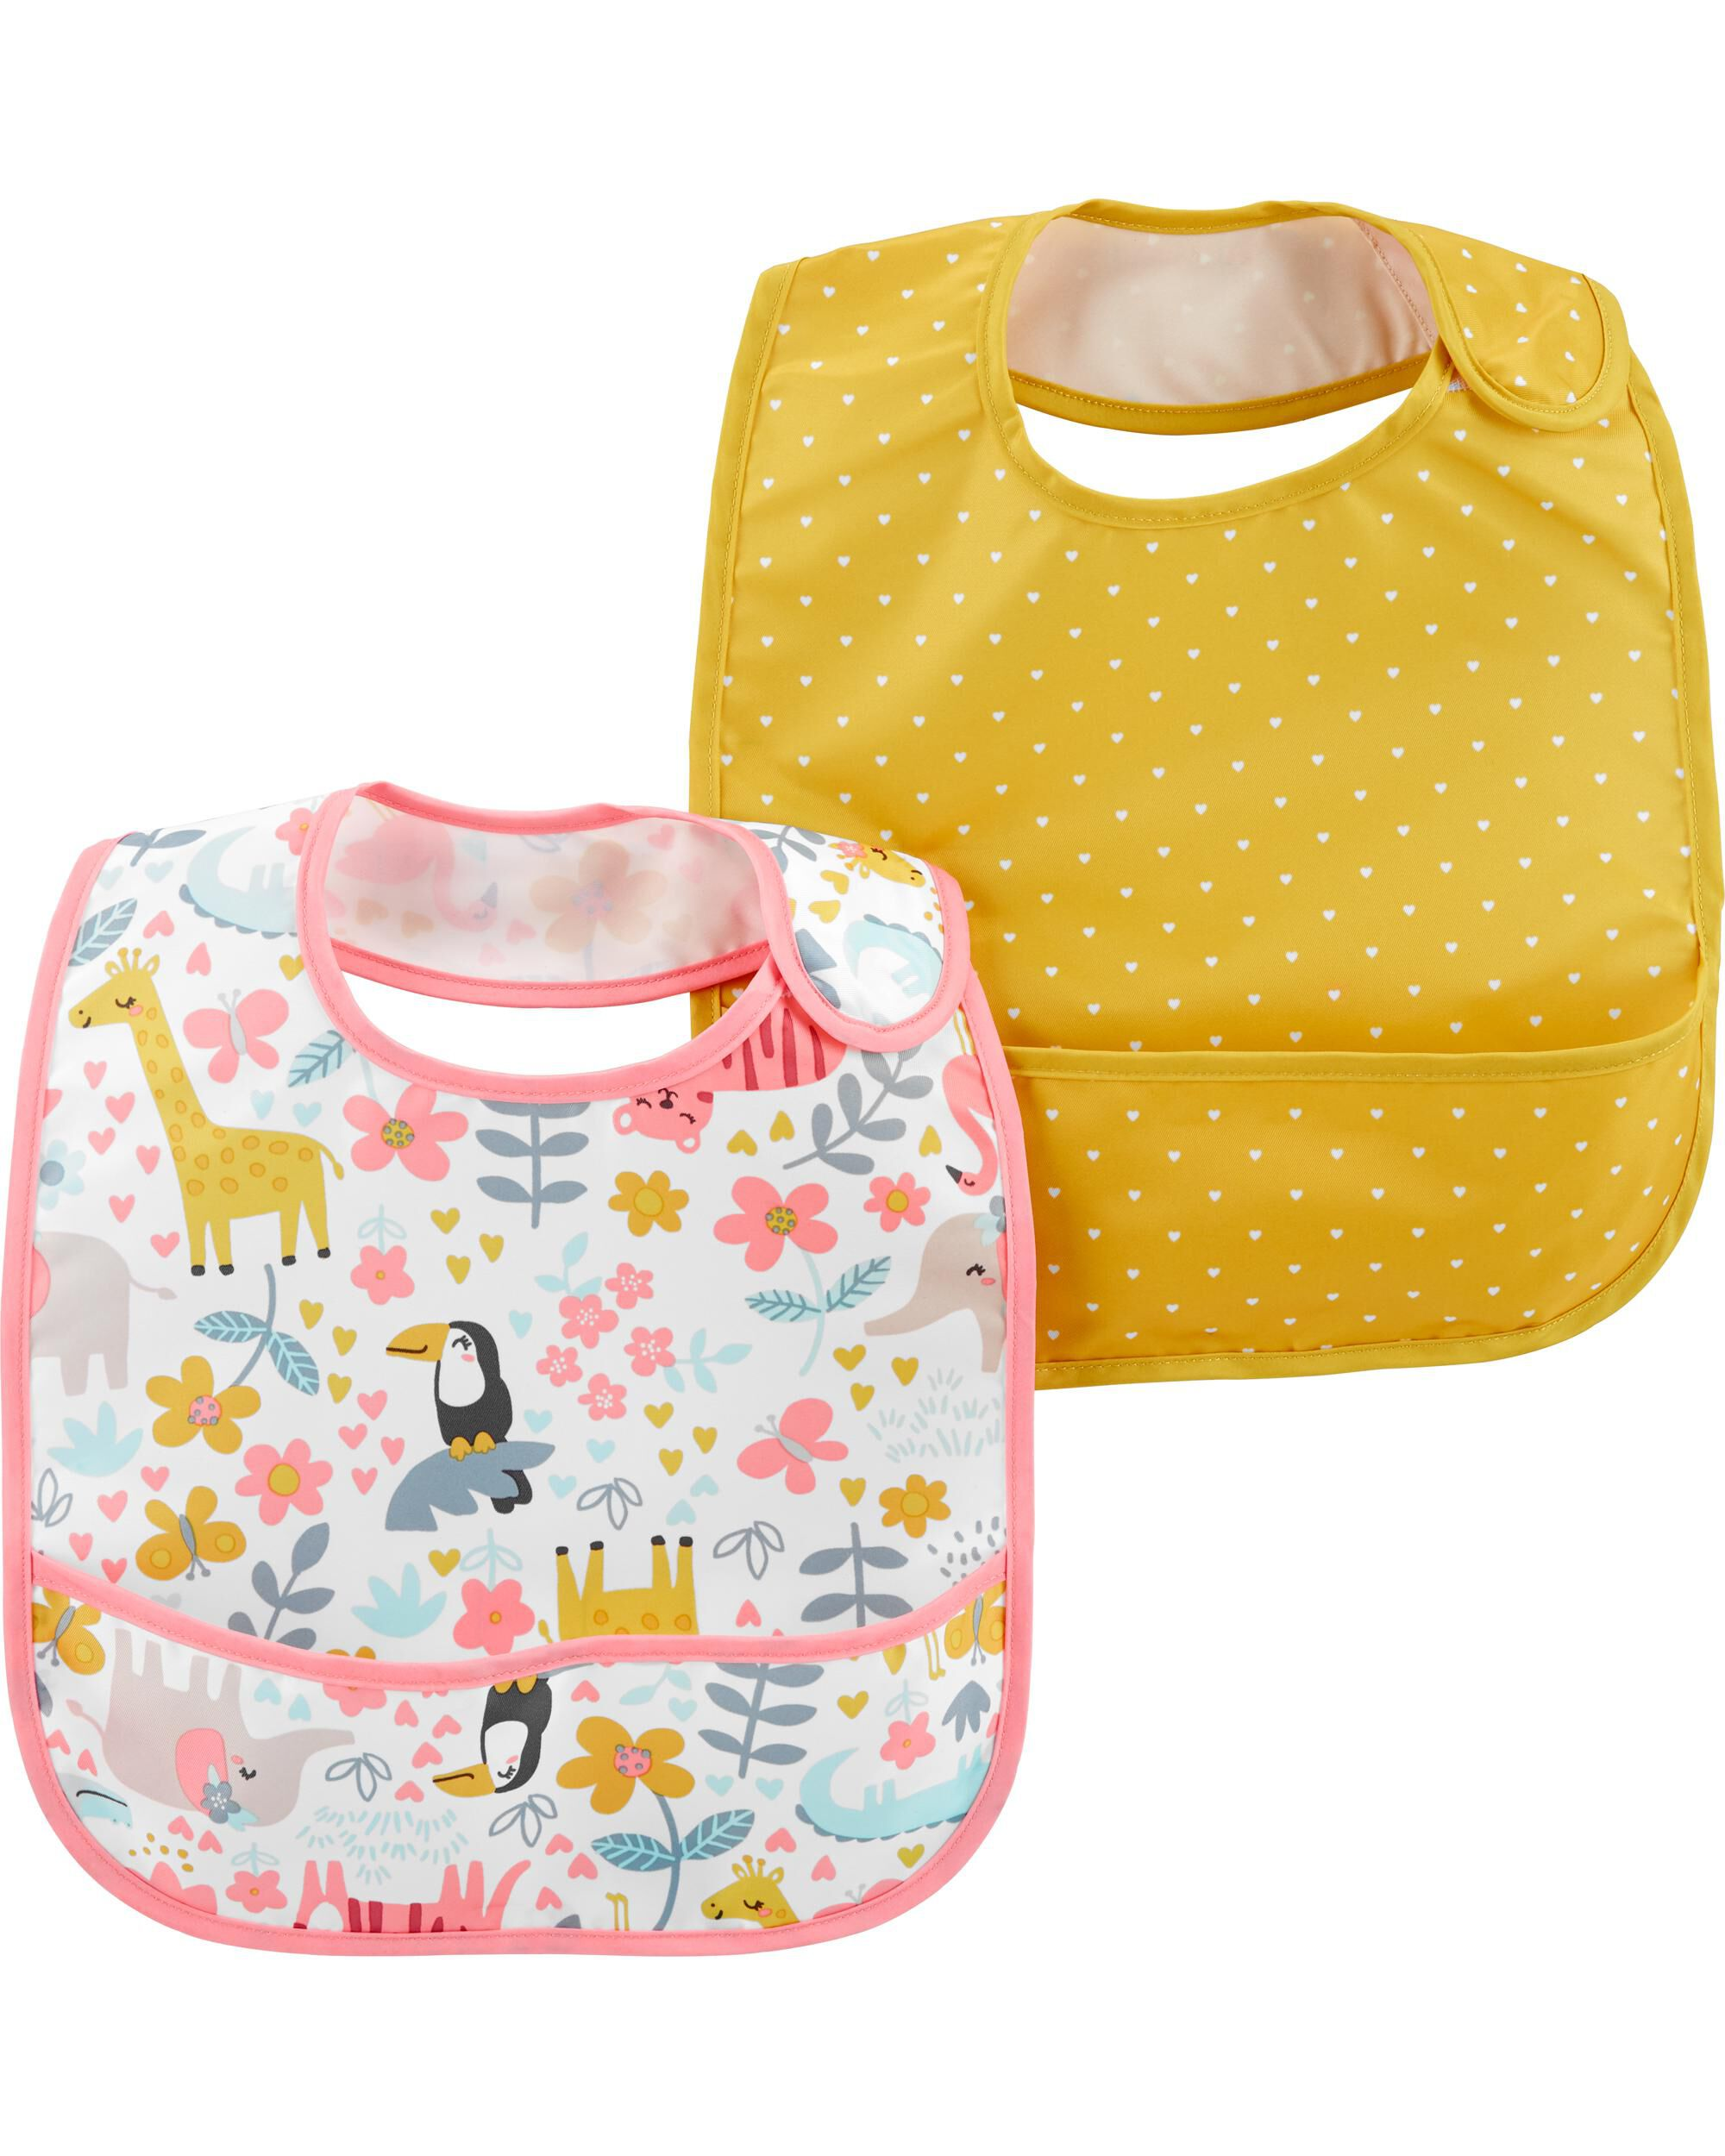 Oshkoshbgosh 2-Pack Hearts & Jungle Print Water Resistant Bibs